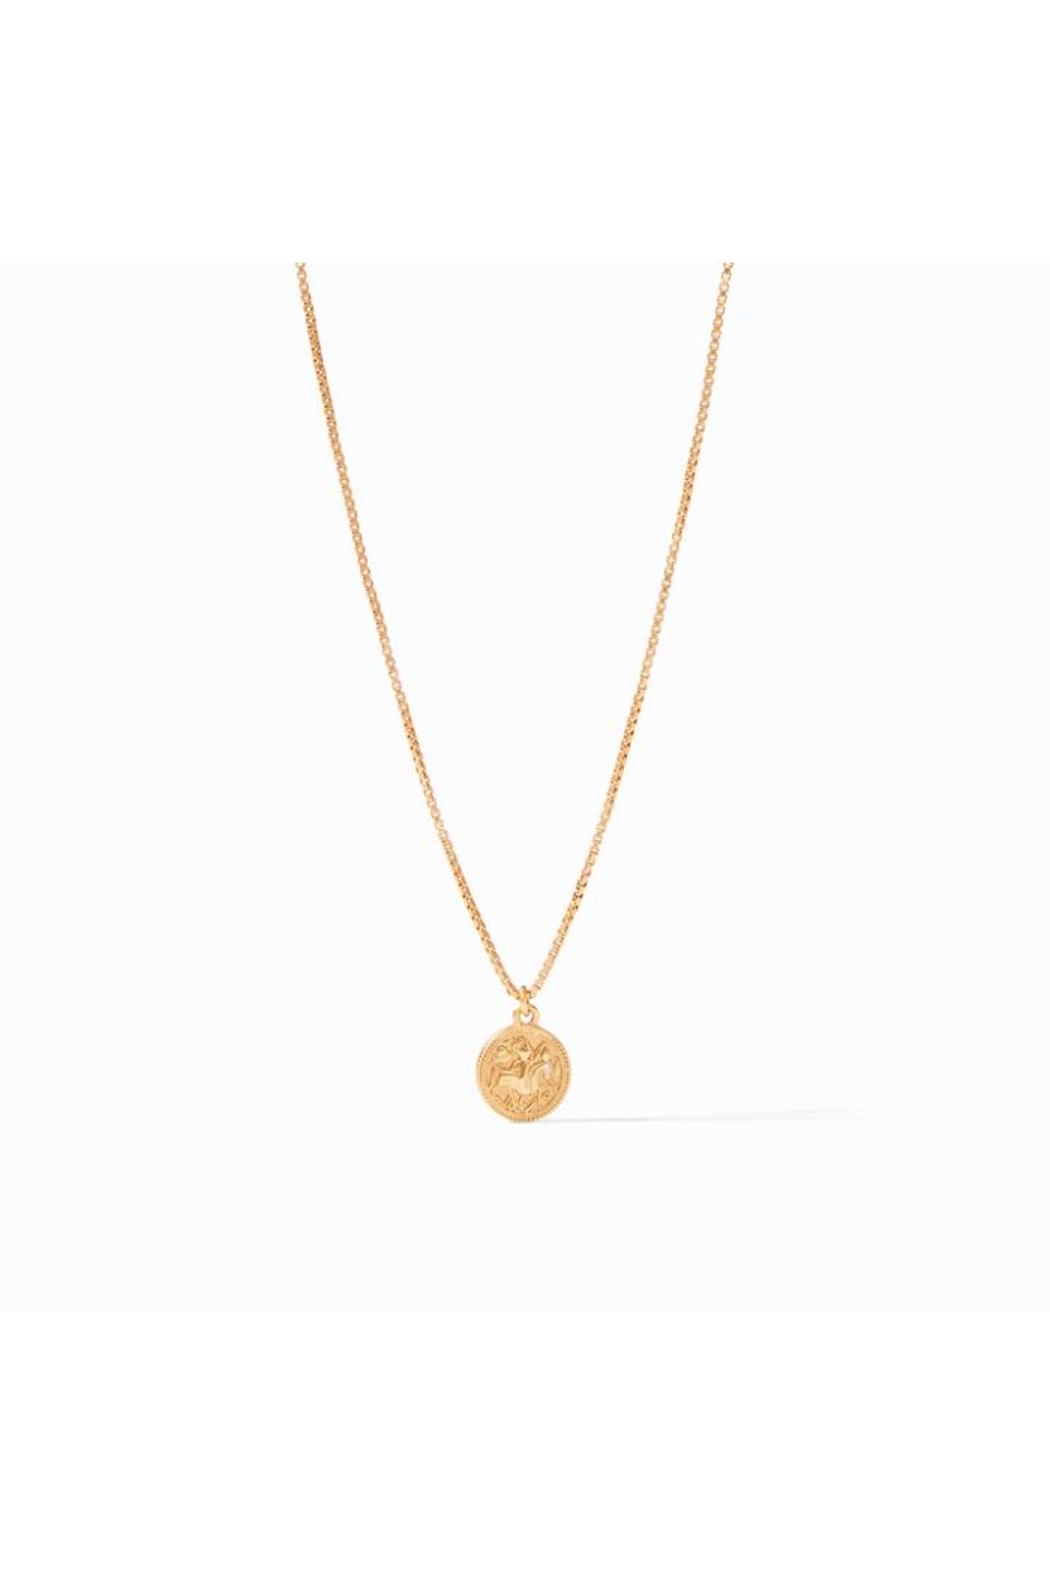 Julie Vos COIN CHARM NECKLACE - Main Image